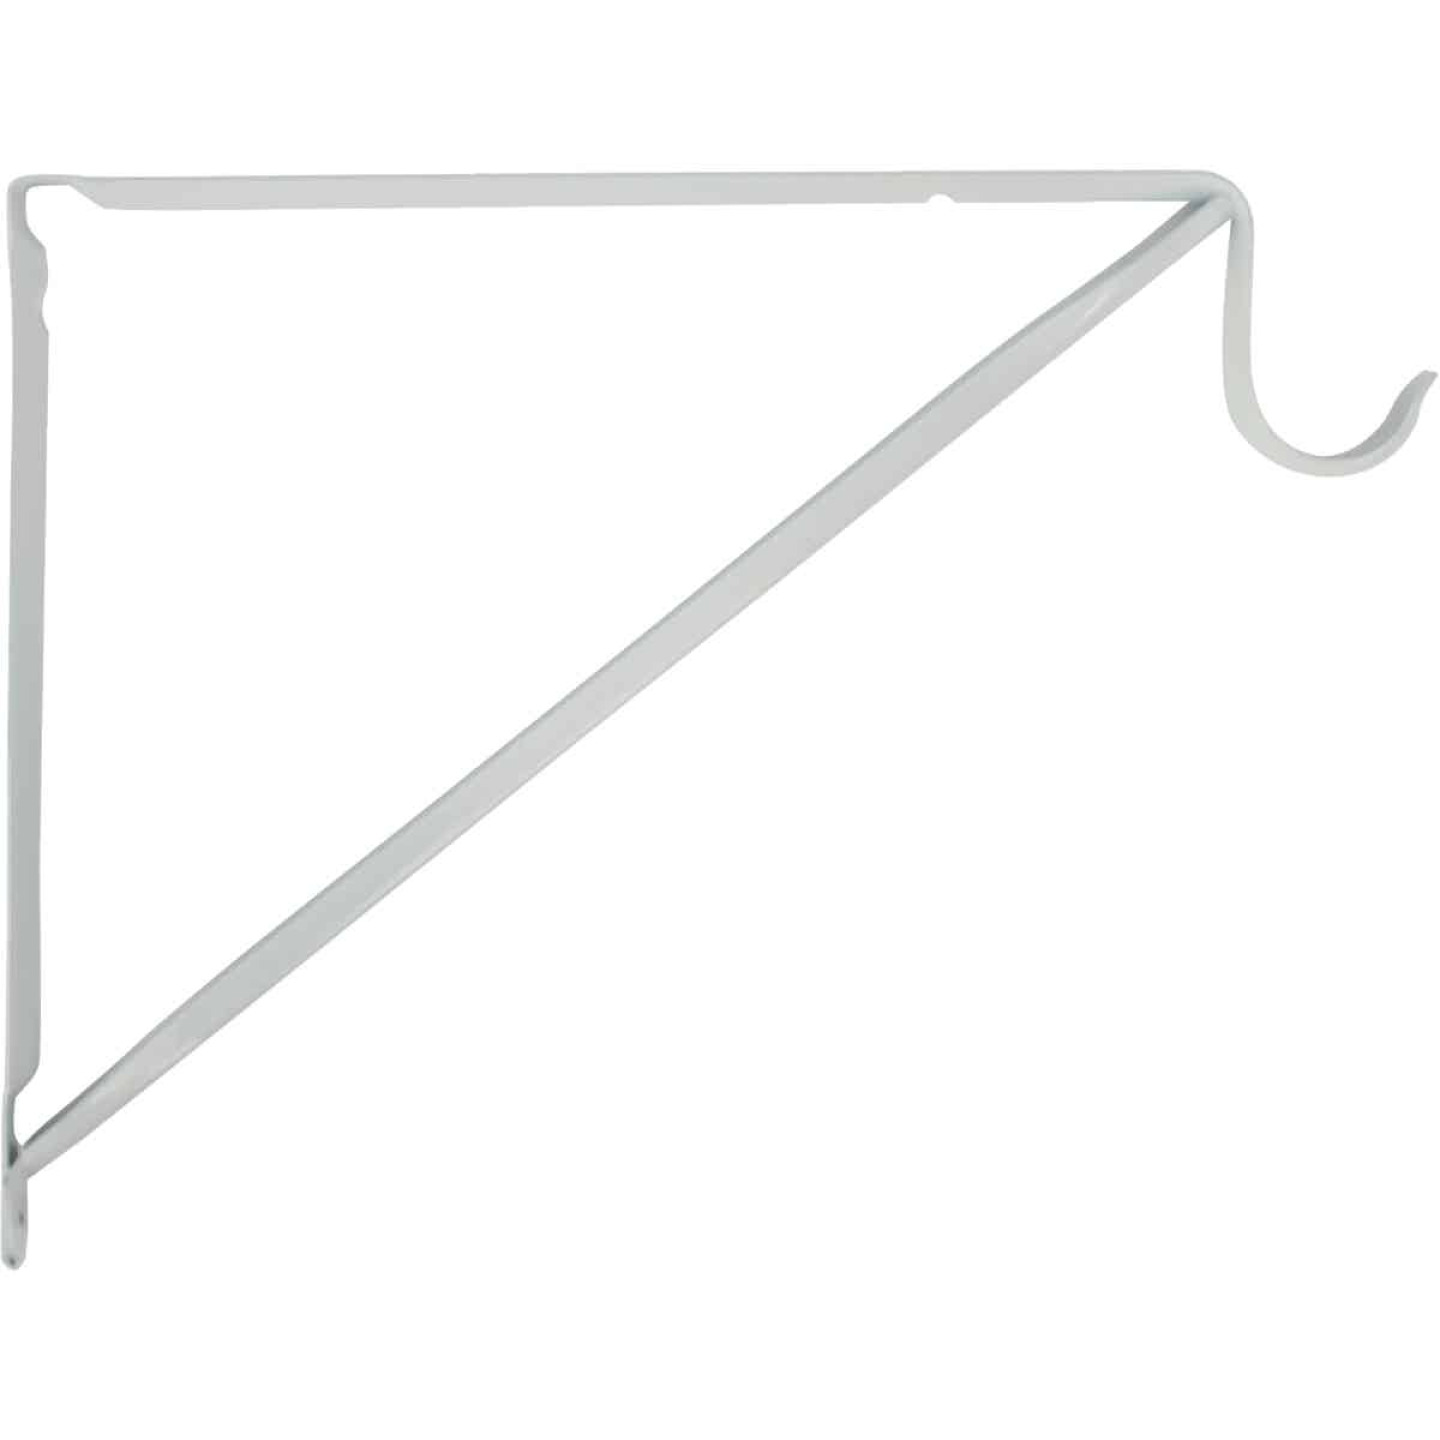 John Sterling Closet-Pro 10 In. H. x 11 In. D. Fixed Closet Shelf & Rod Bracket, White Image 2